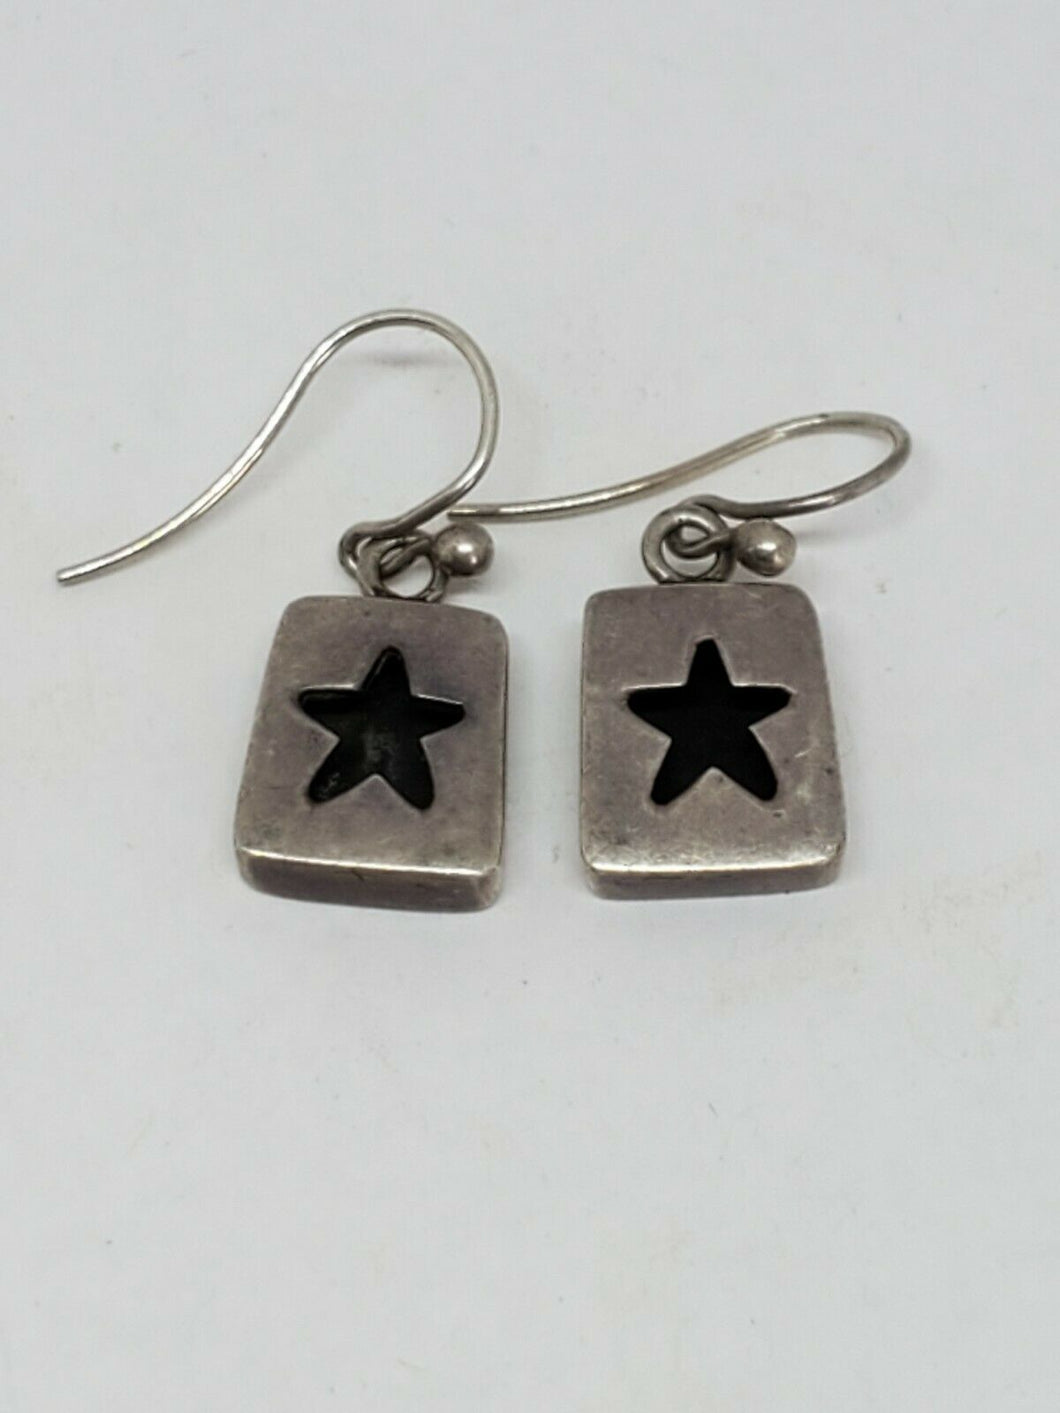 Vintage Sterling Silver Mexico AHD Cut Out Star Block Earrings